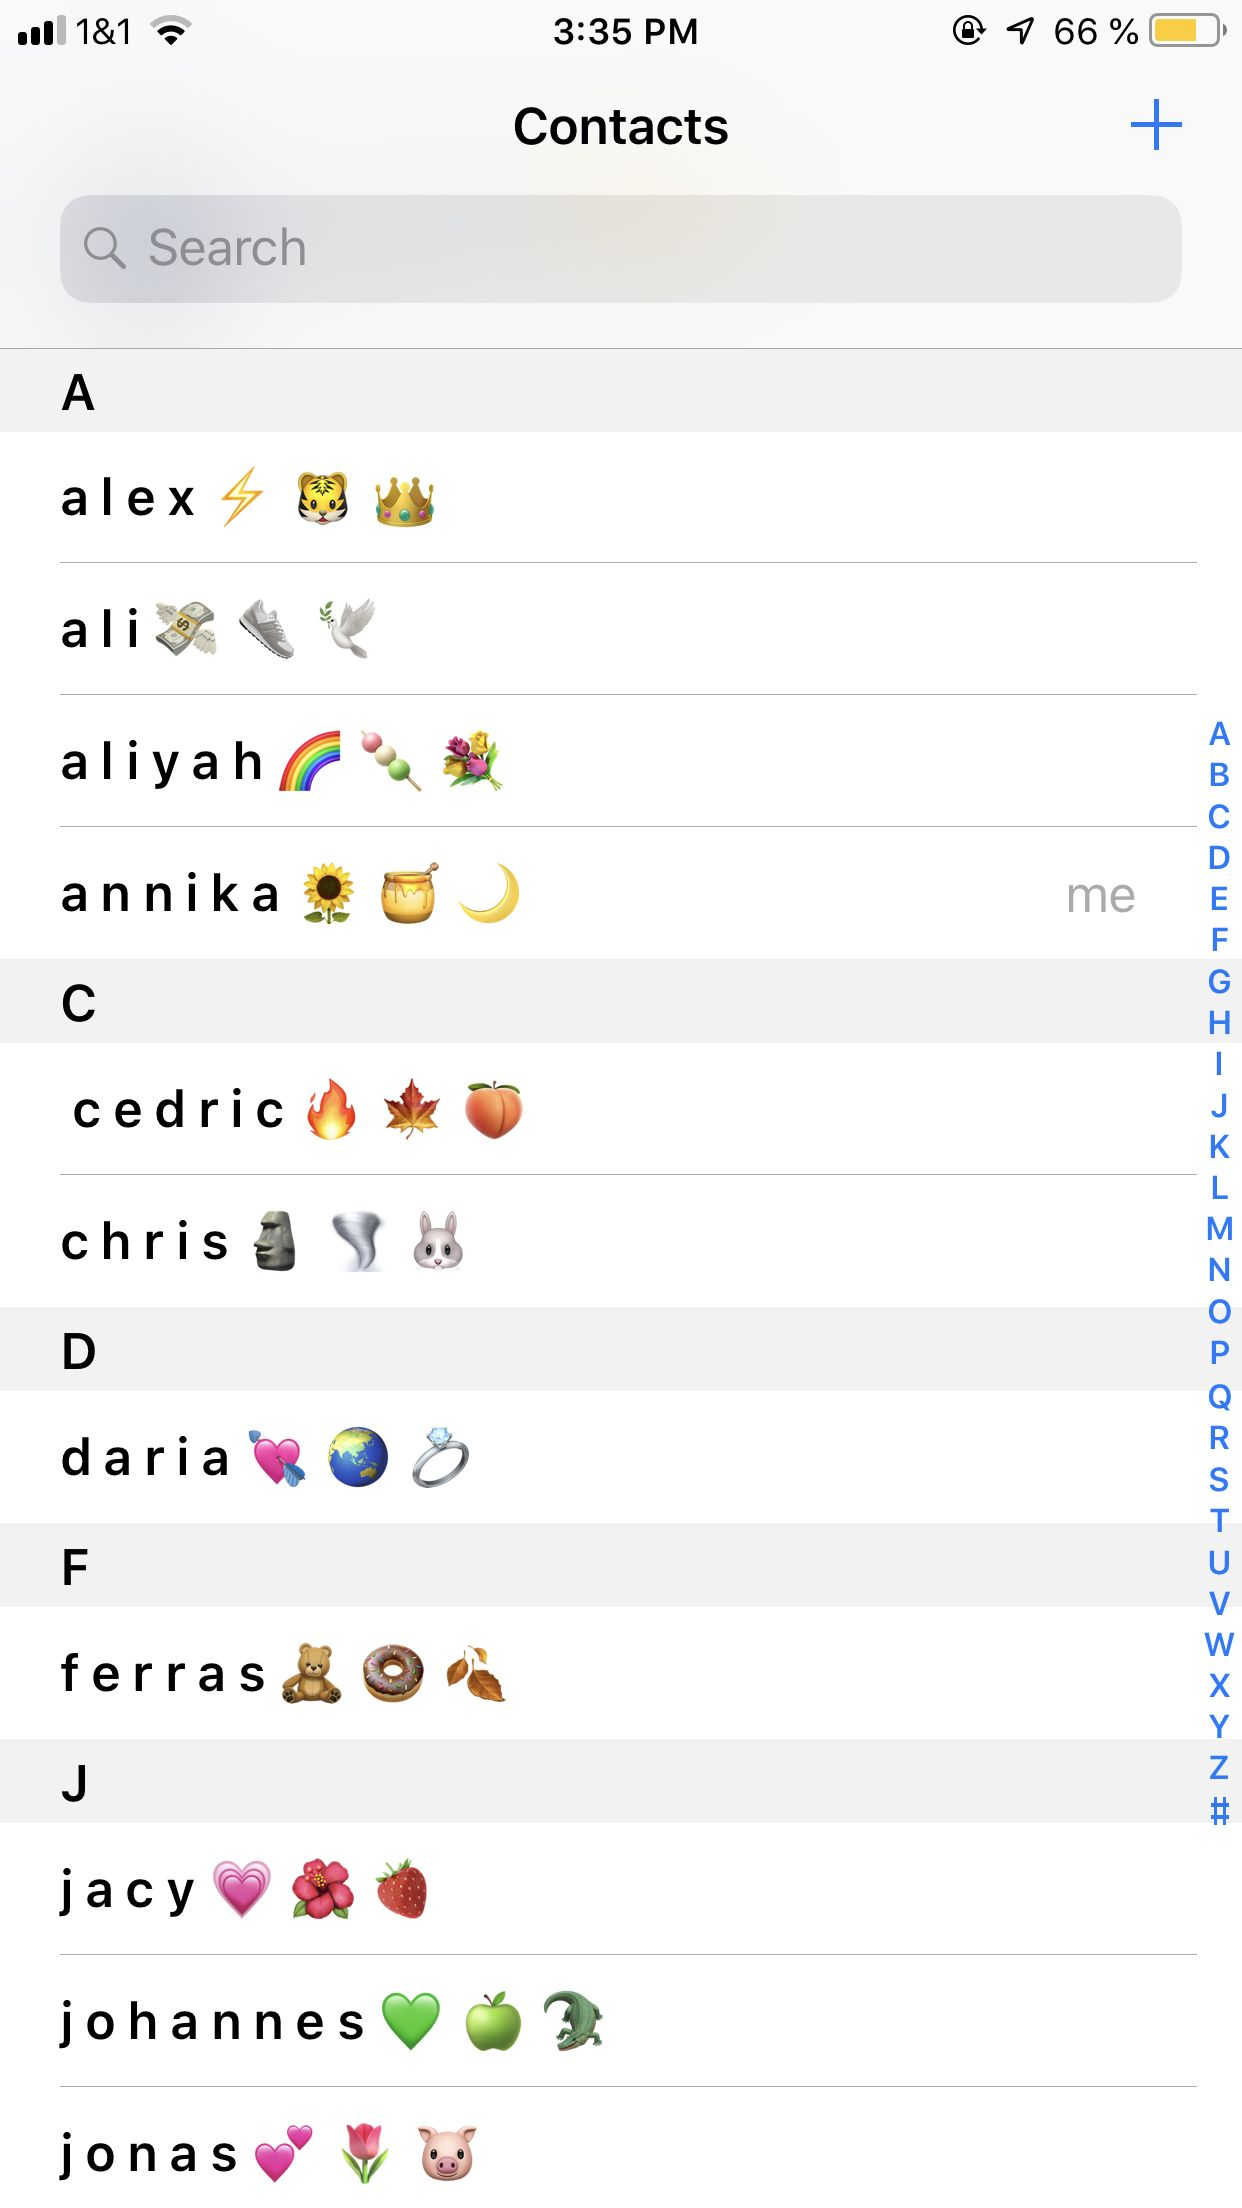 Aesthetic Contacts Emoji Combinations Cute Emoji Combinations Iphone Organization